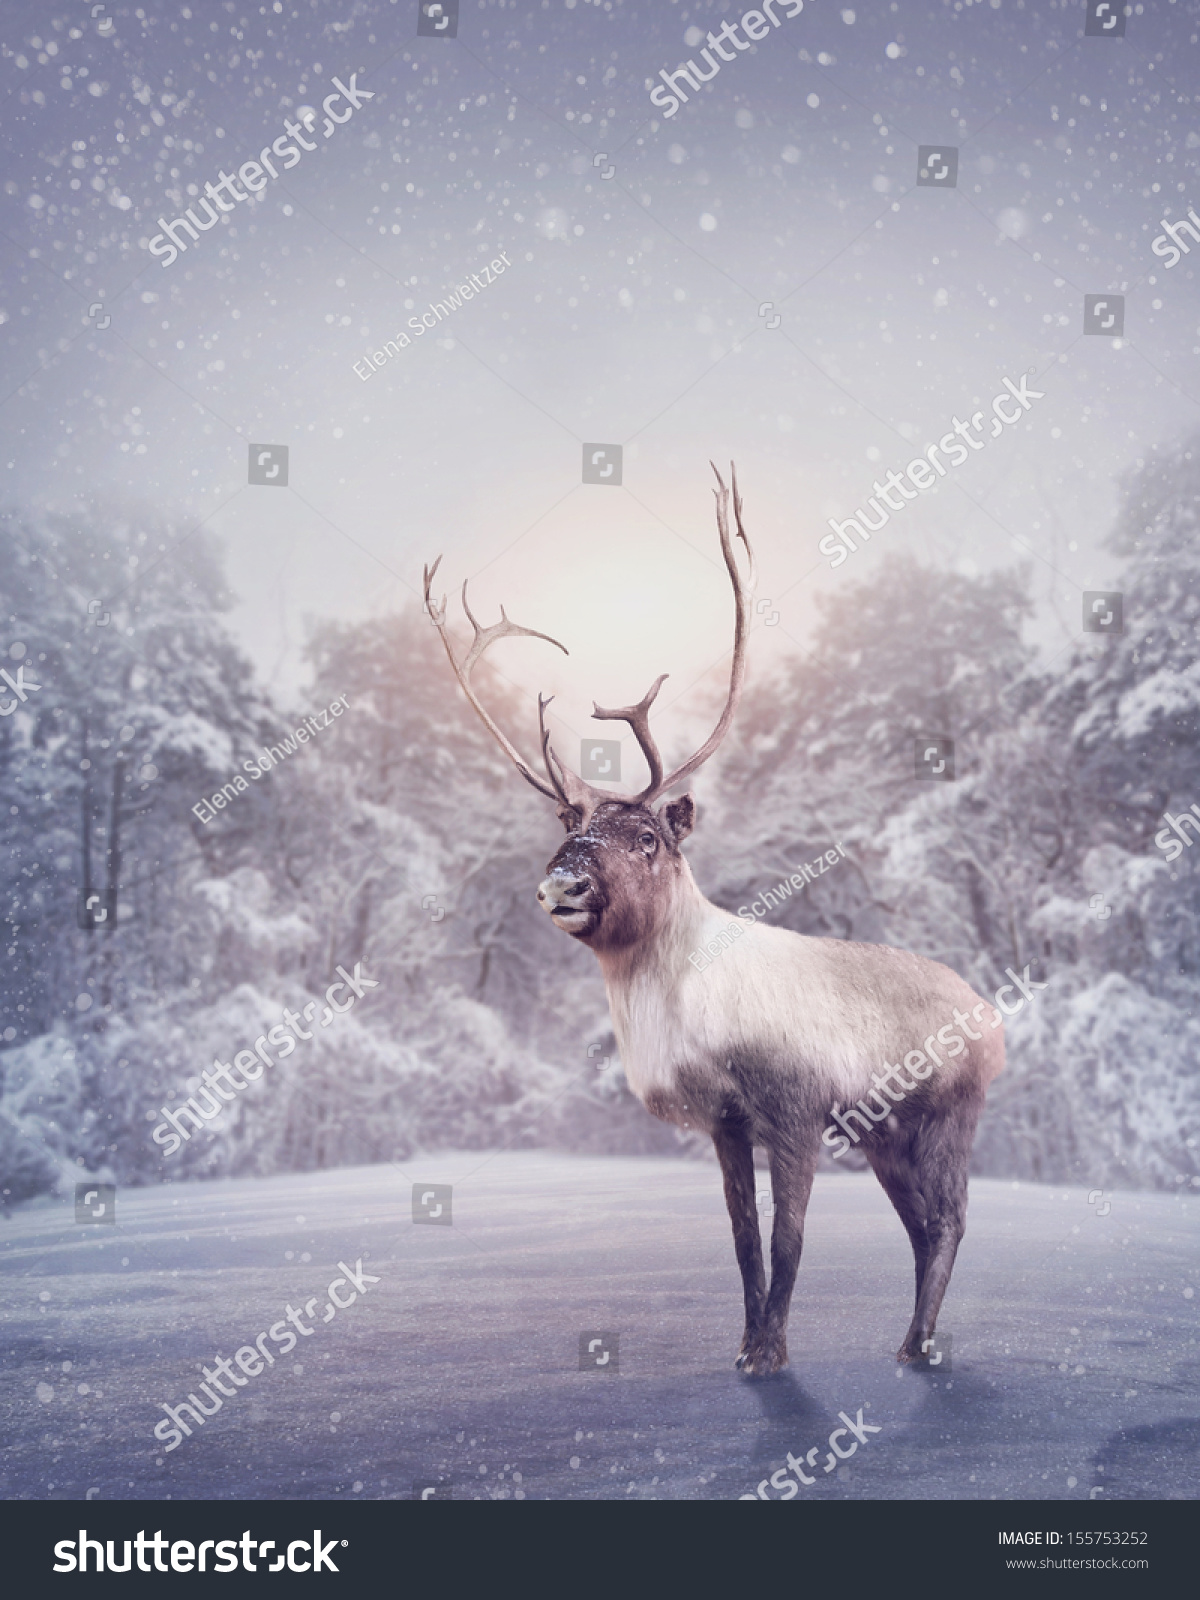 Christmas reindeer in snow reindeer standing in the snow stock photo